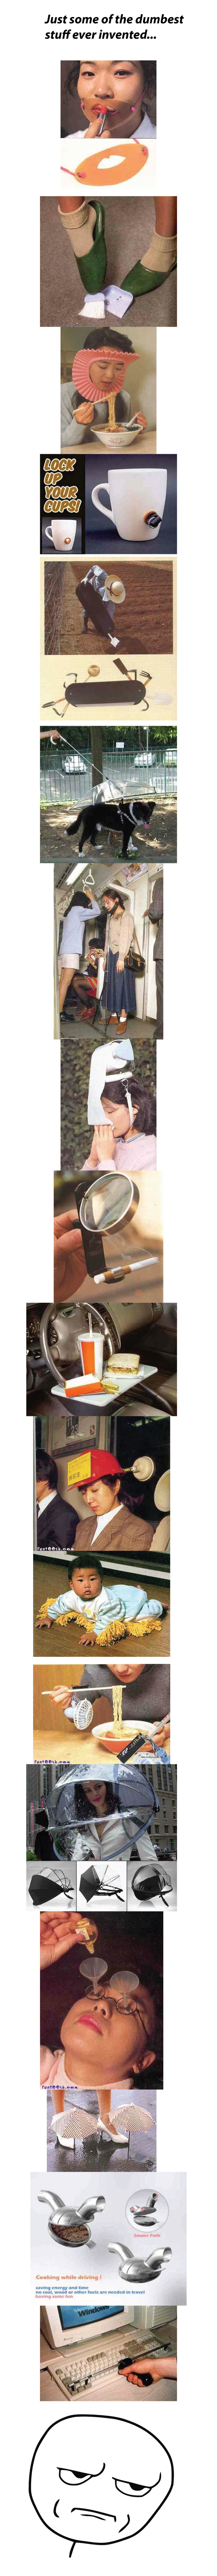 """Wait, What?. . Just some of the dumbest stuff ever invented... NEI"""" q oau Cooking while driving! """"ii' atl? that and time no can we or ulna luck an needed In and"""